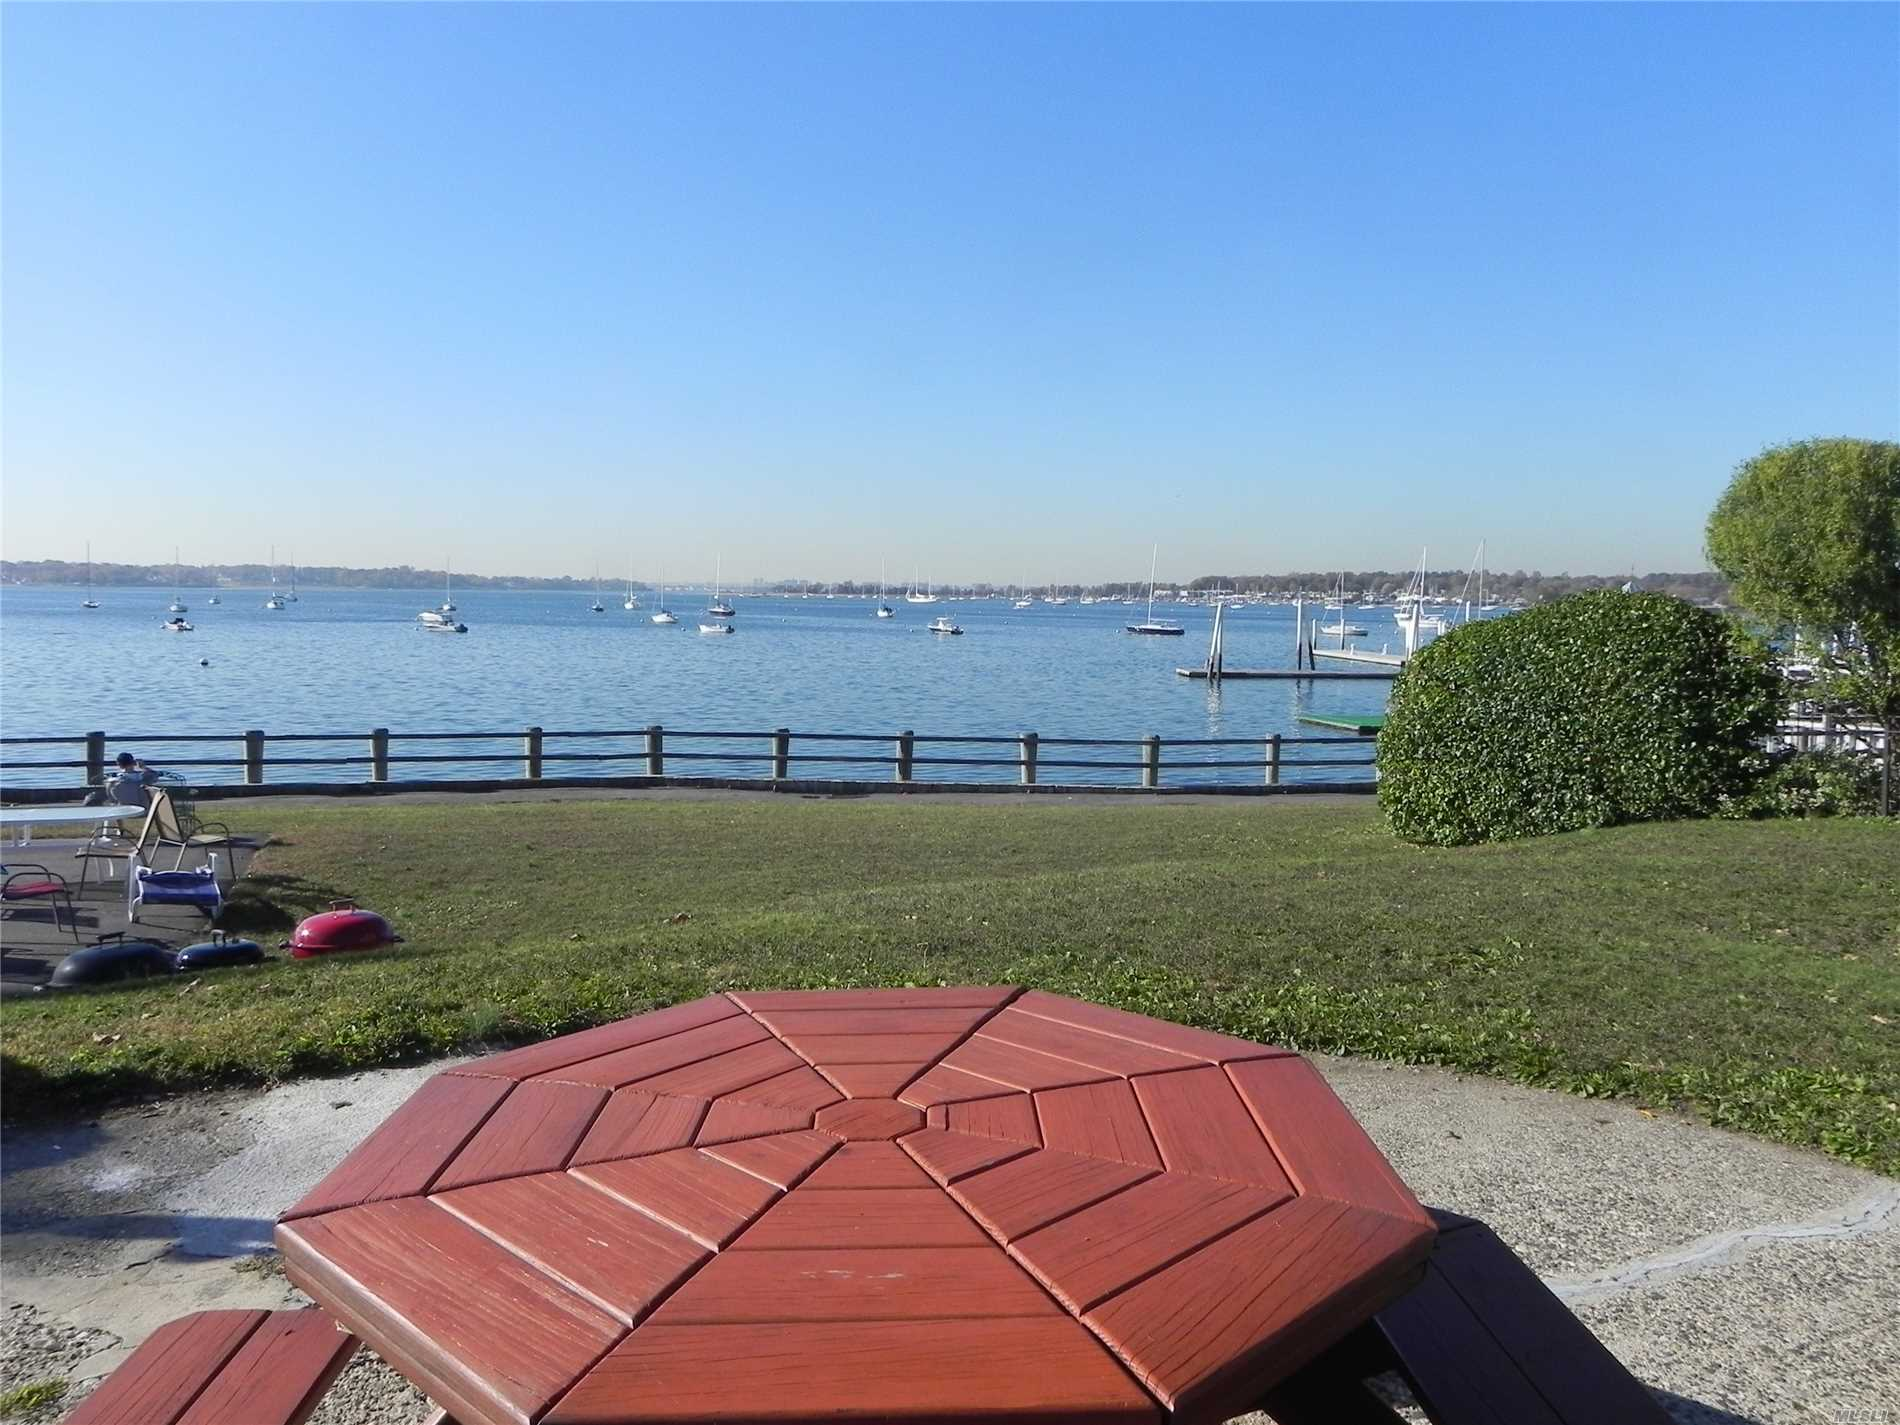 Port Washington. Spacious 1 Bedroom Unit W/Hardwood Floors, Eik W/ Dishwasher And Great Closet Space. Heat And Water Incl. 1-2 Year Lease Available. Near Restaurants, Shopping And Much, Much More!!Shuttle To The Lirr M - F Am/Pm Rush, Waterfront Patio & Bbq Area, Private Dock, Dedicated Parking Avail. Live In Supers, Laundry On Premises, Pet Friendly.